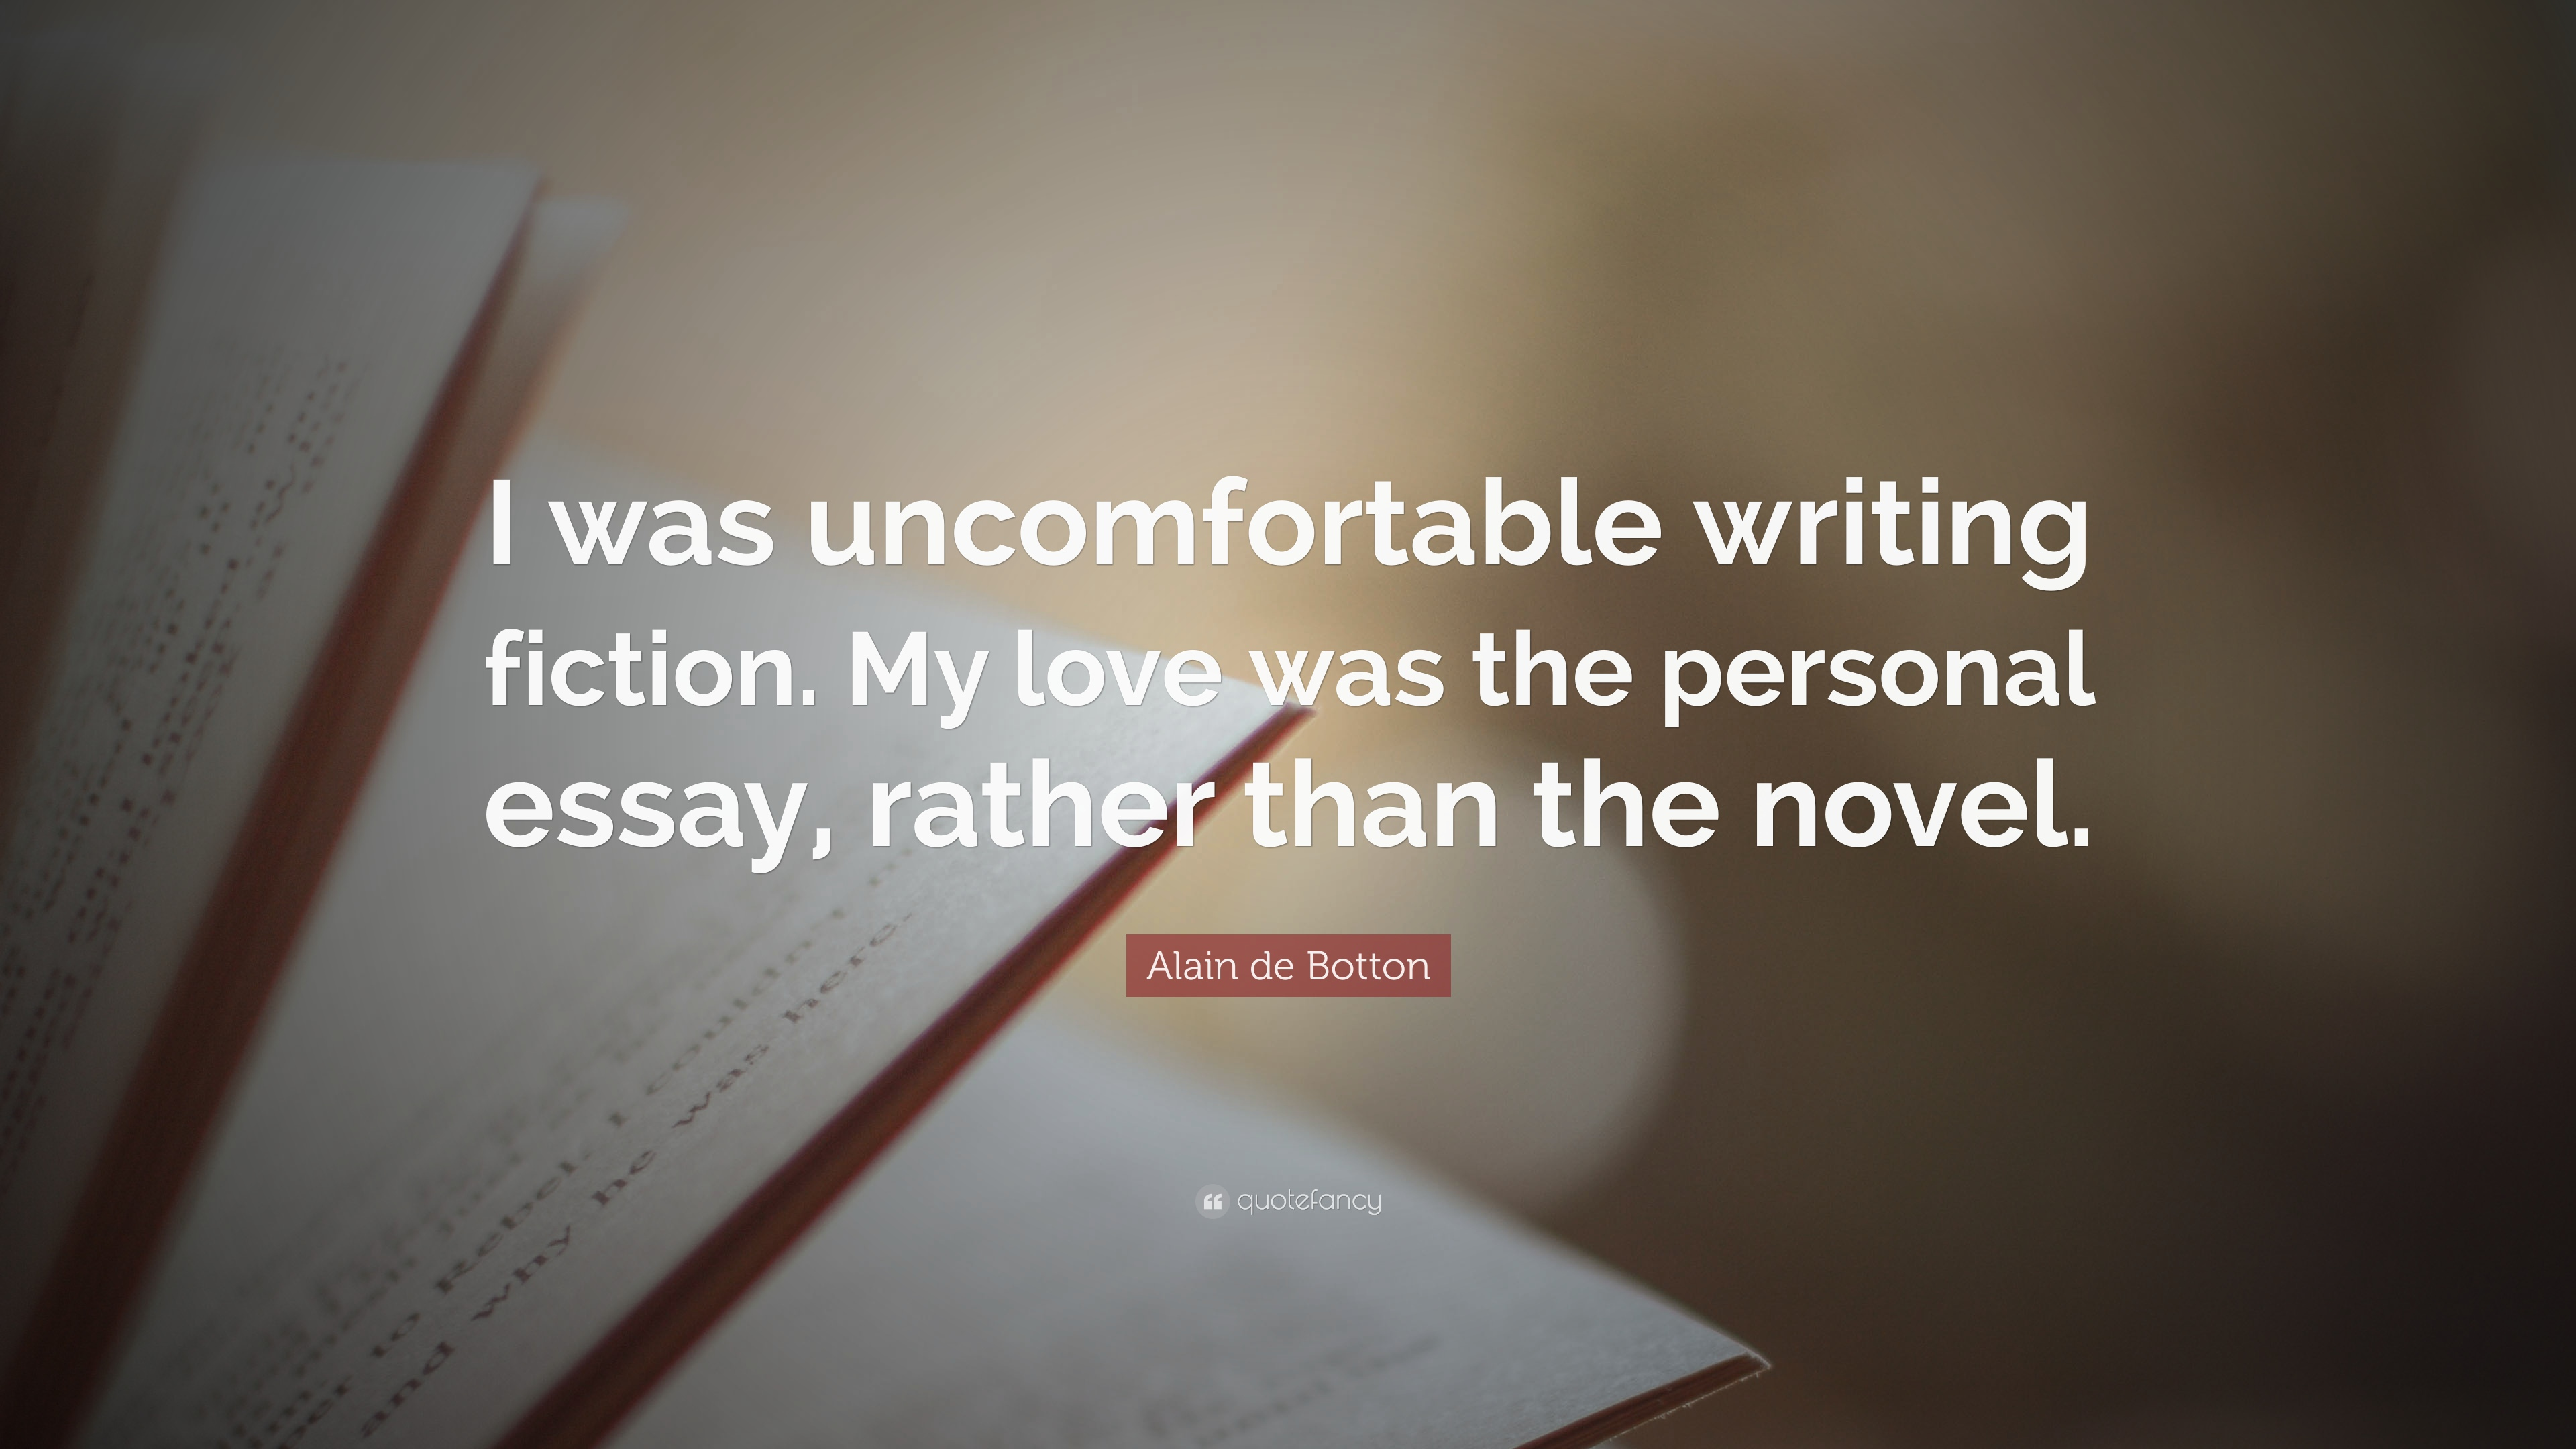 019 Alain Botton Essays In Love Essay Example Quote I Was Uncomfortable Writing Fiction Singular De Pdf Audiobook Epub Full